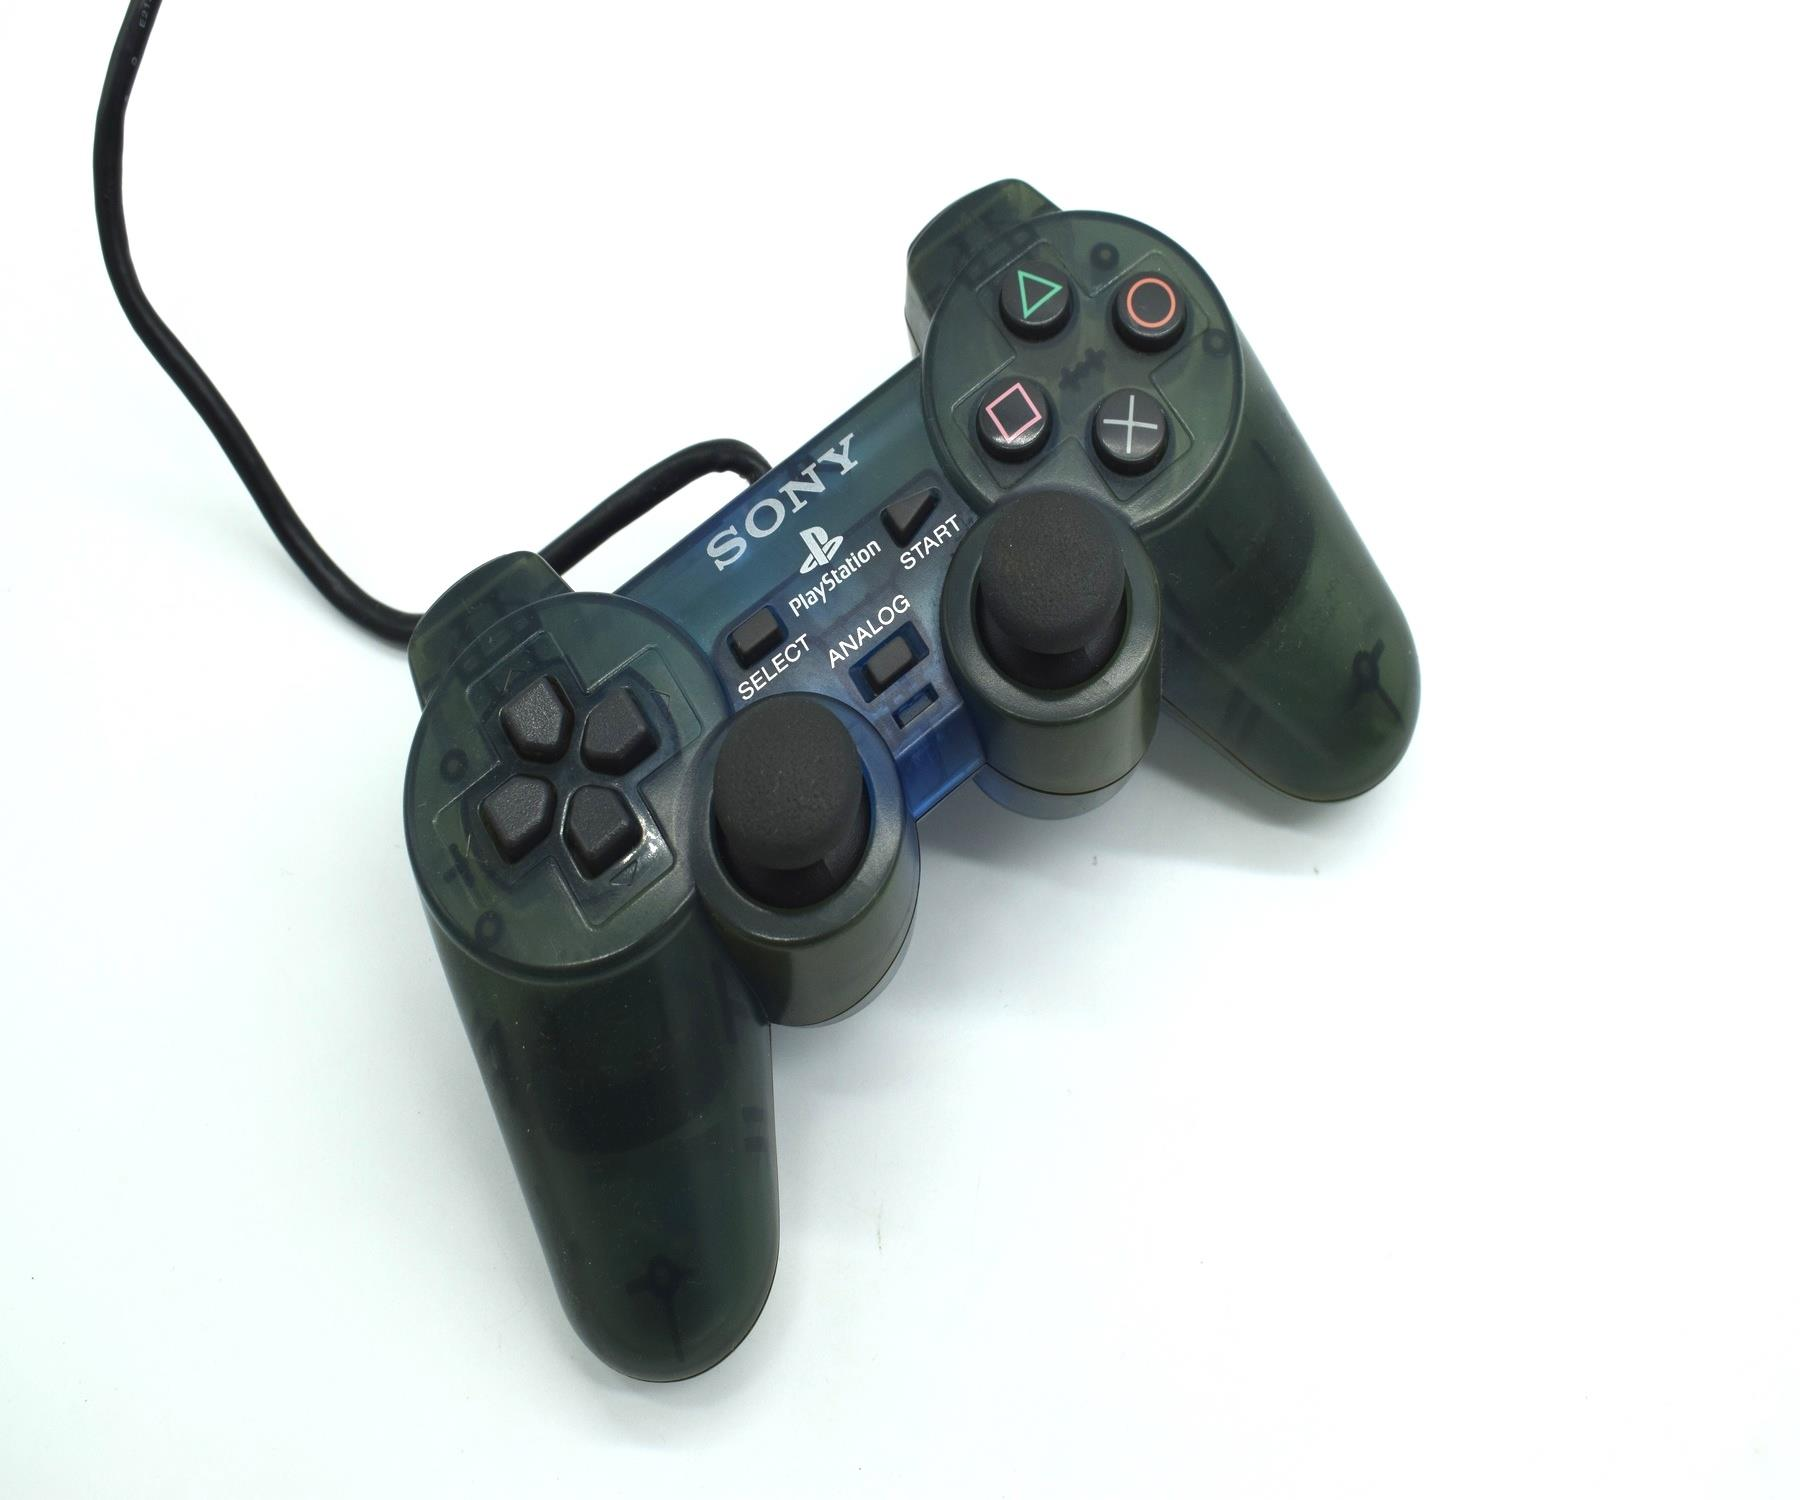 Original-Official-Sony-Dual-Shock-2-PS2-Wired-Controller-Pad-Multiple-Colours thumbnail 10